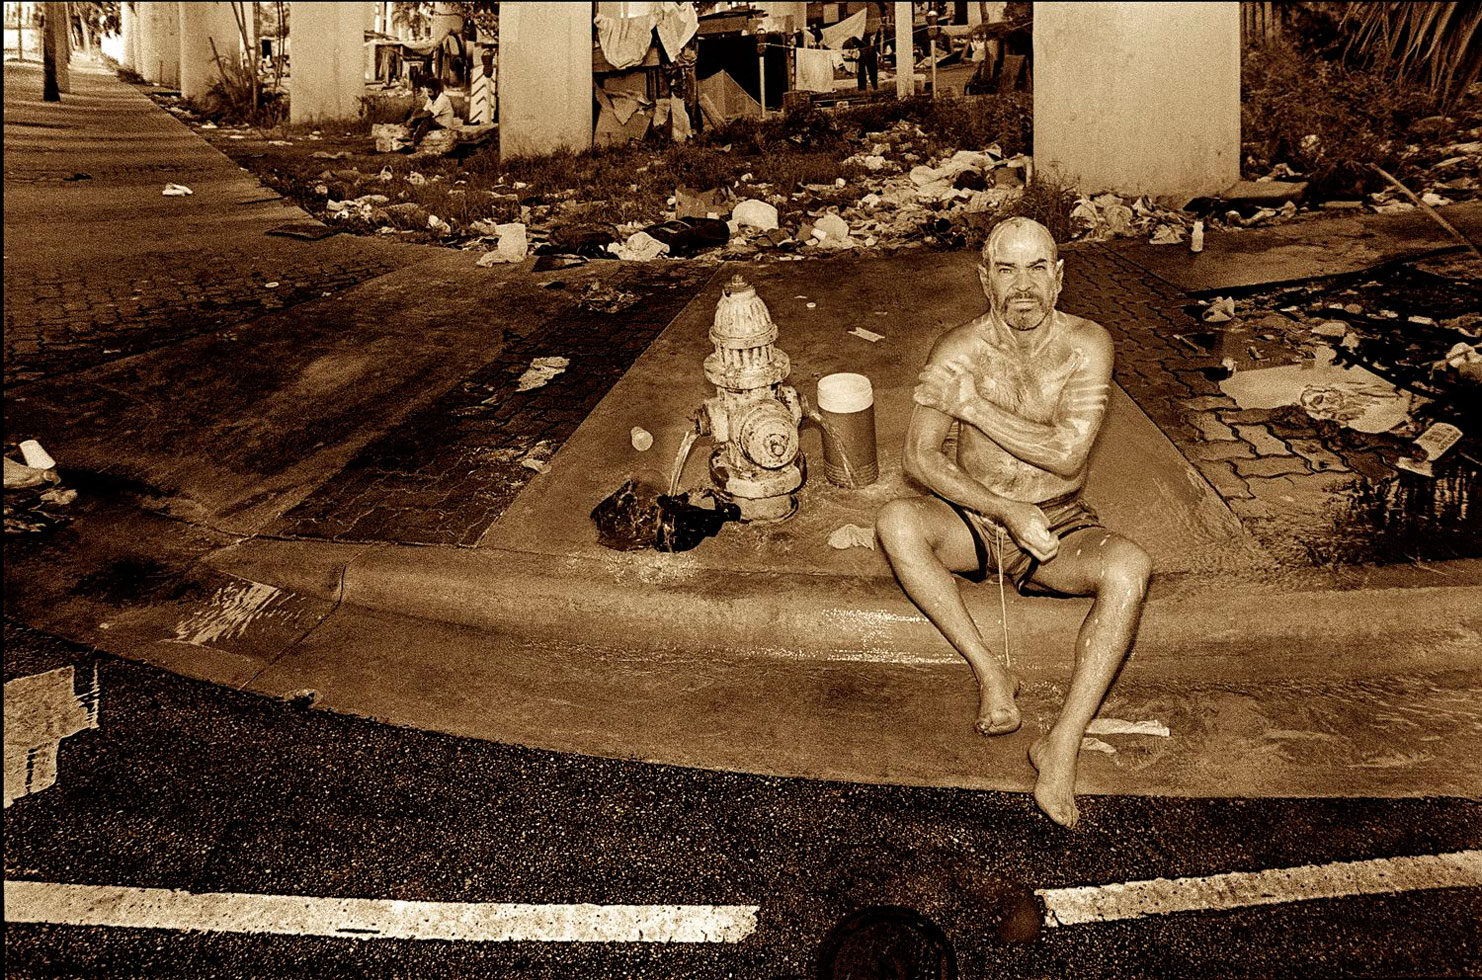 """Downtown Miami, Florida, 1993-1994.   While the city of Miami was being sued in the 1990's for violating the civil rights of homeless people, a judge ordered """"safe zones"""" be established where people could live without fear of arrest. In the photo a man is bathing at a water hydrant in Downtown Miami. This water source also served for drinking water and washing clothes."""